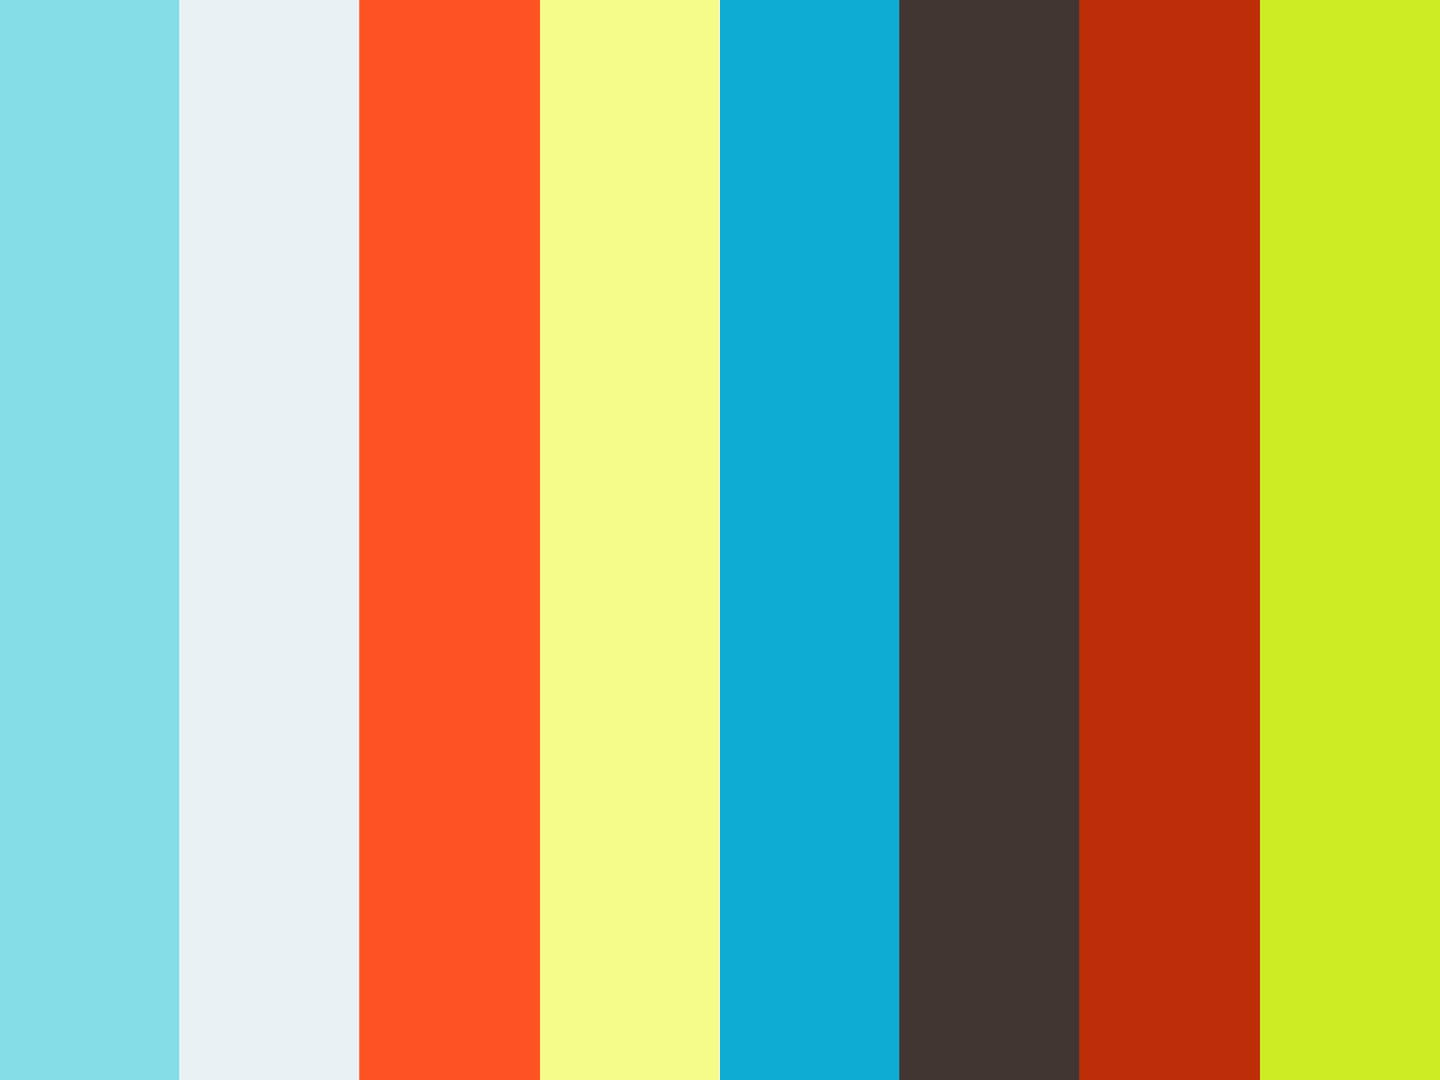 annonce renault nlle megane bose dci130 fap visio system kng on vimeo. Black Bedroom Furniture Sets. Home Design Ideas